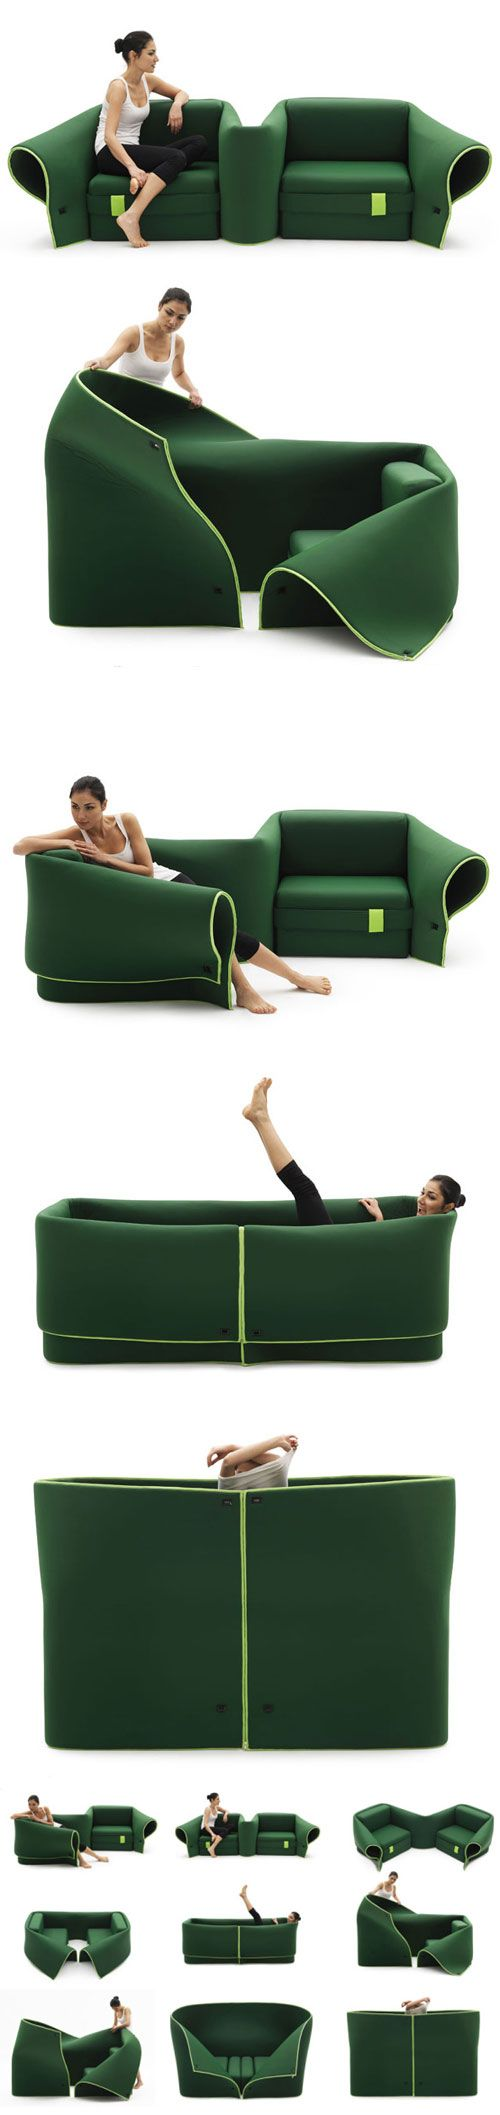 Convertible Sofa: Amorph Furniture, Idea, This Is Awesome, Stuff, Color, House, Design, Convertible Sofas, Convertible Couch